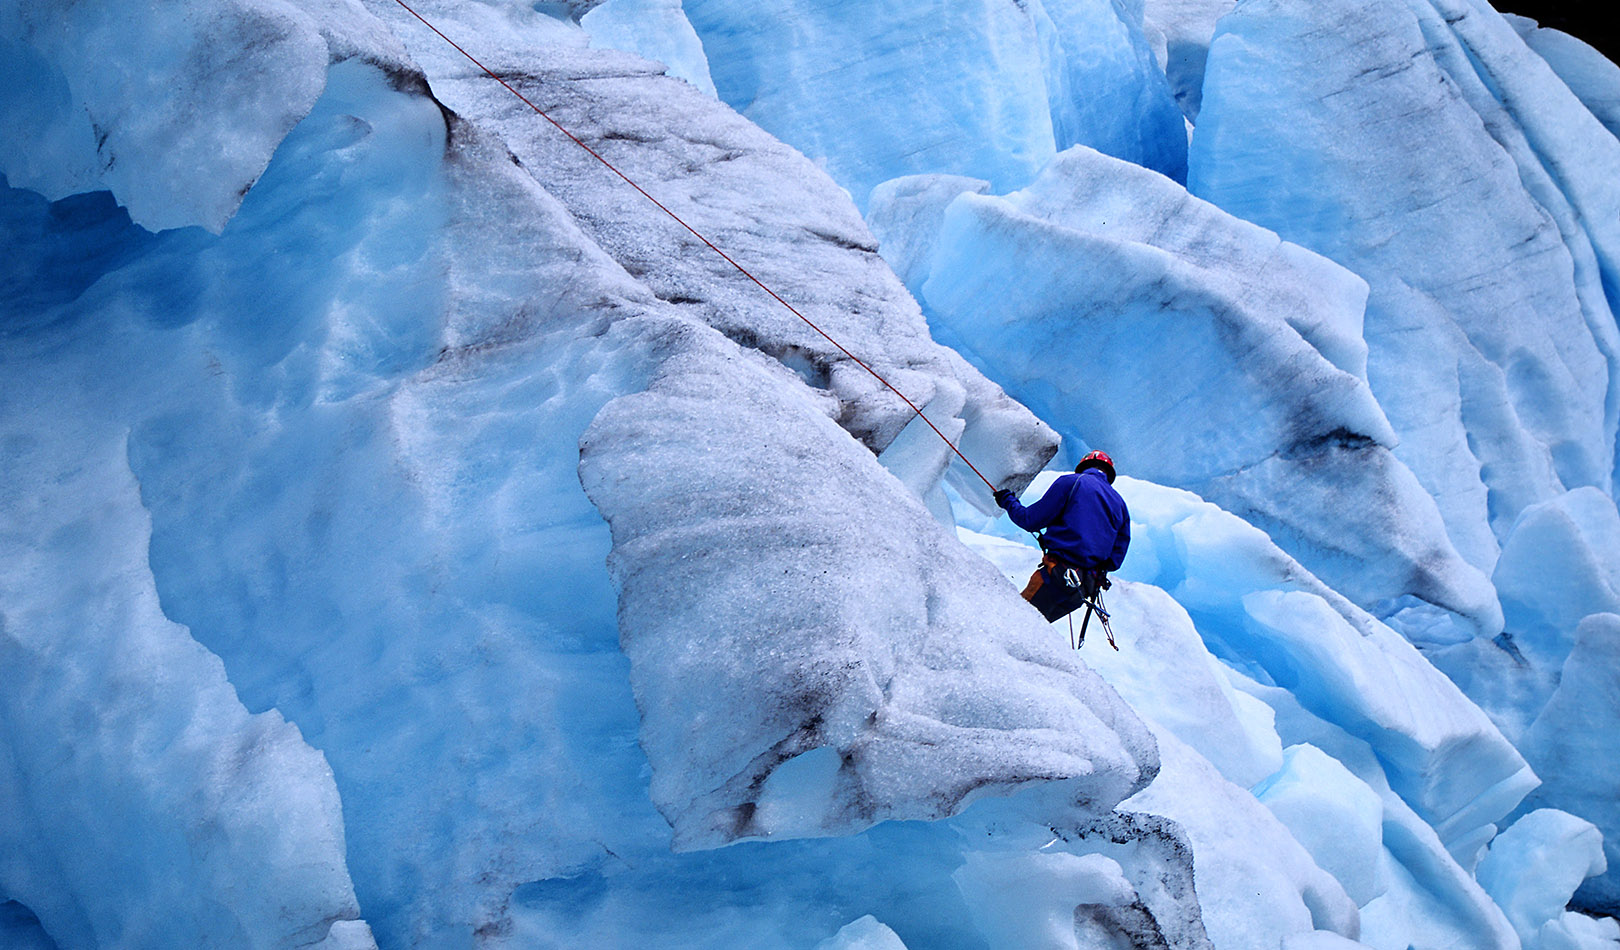 Mountainclimber on the Jostedal glacier.